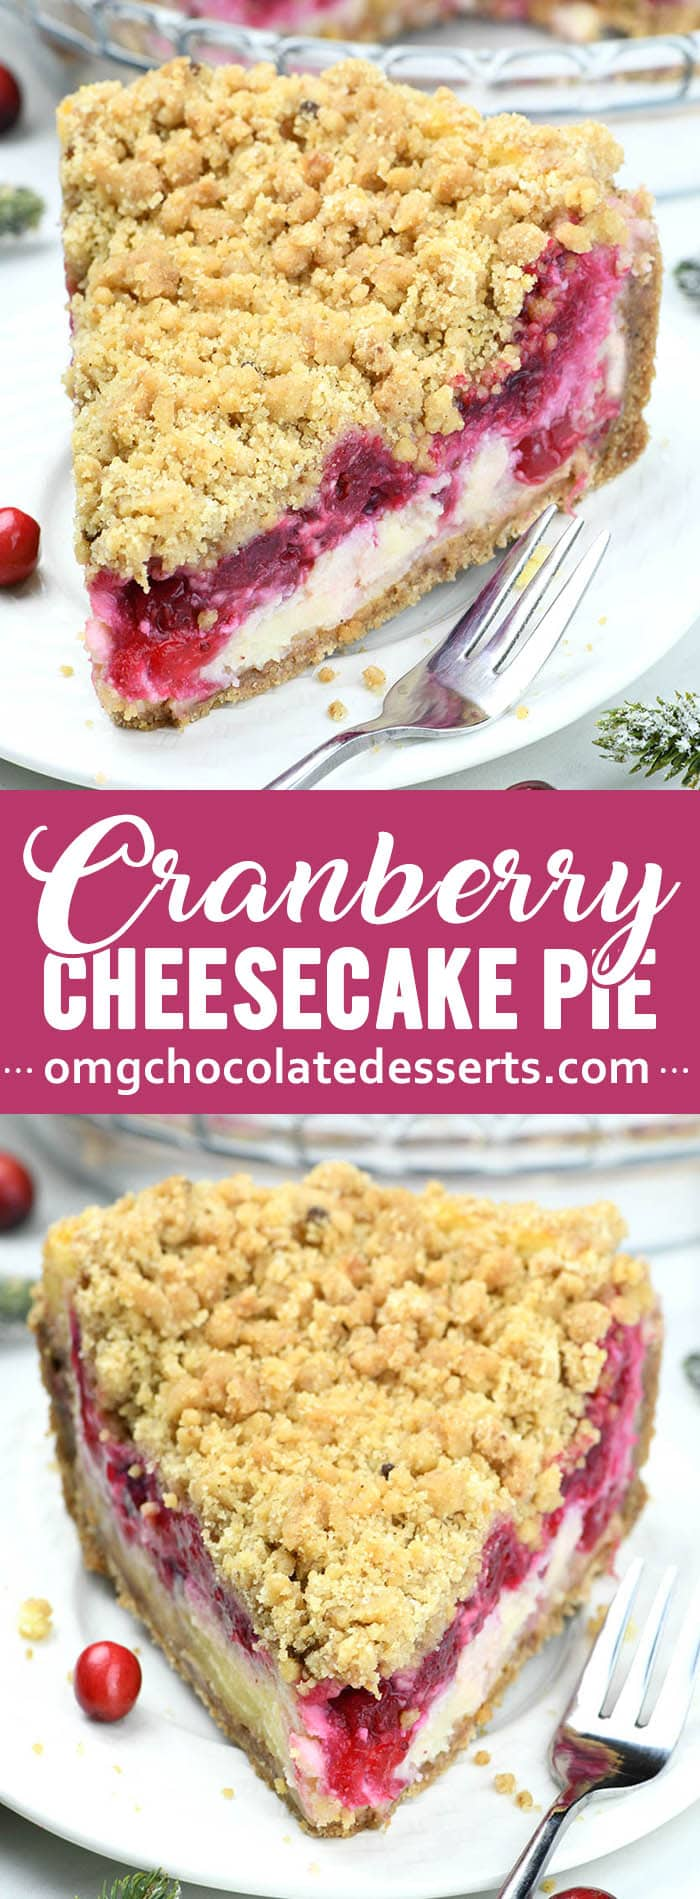 Cranberry Cheesecake Pie is a unique fall dessert recipe to add to your holiday menu for Thanksgiving or Christmas! Crunchy cinnamon sugar cookie crust with cranberry cheesecake filling! #cranberrypie #cheesecakepie #bestpierecipes #thanksgivingpierecipe #cranberrycheesecake #homemadethanksgivingpie #cookiecrust